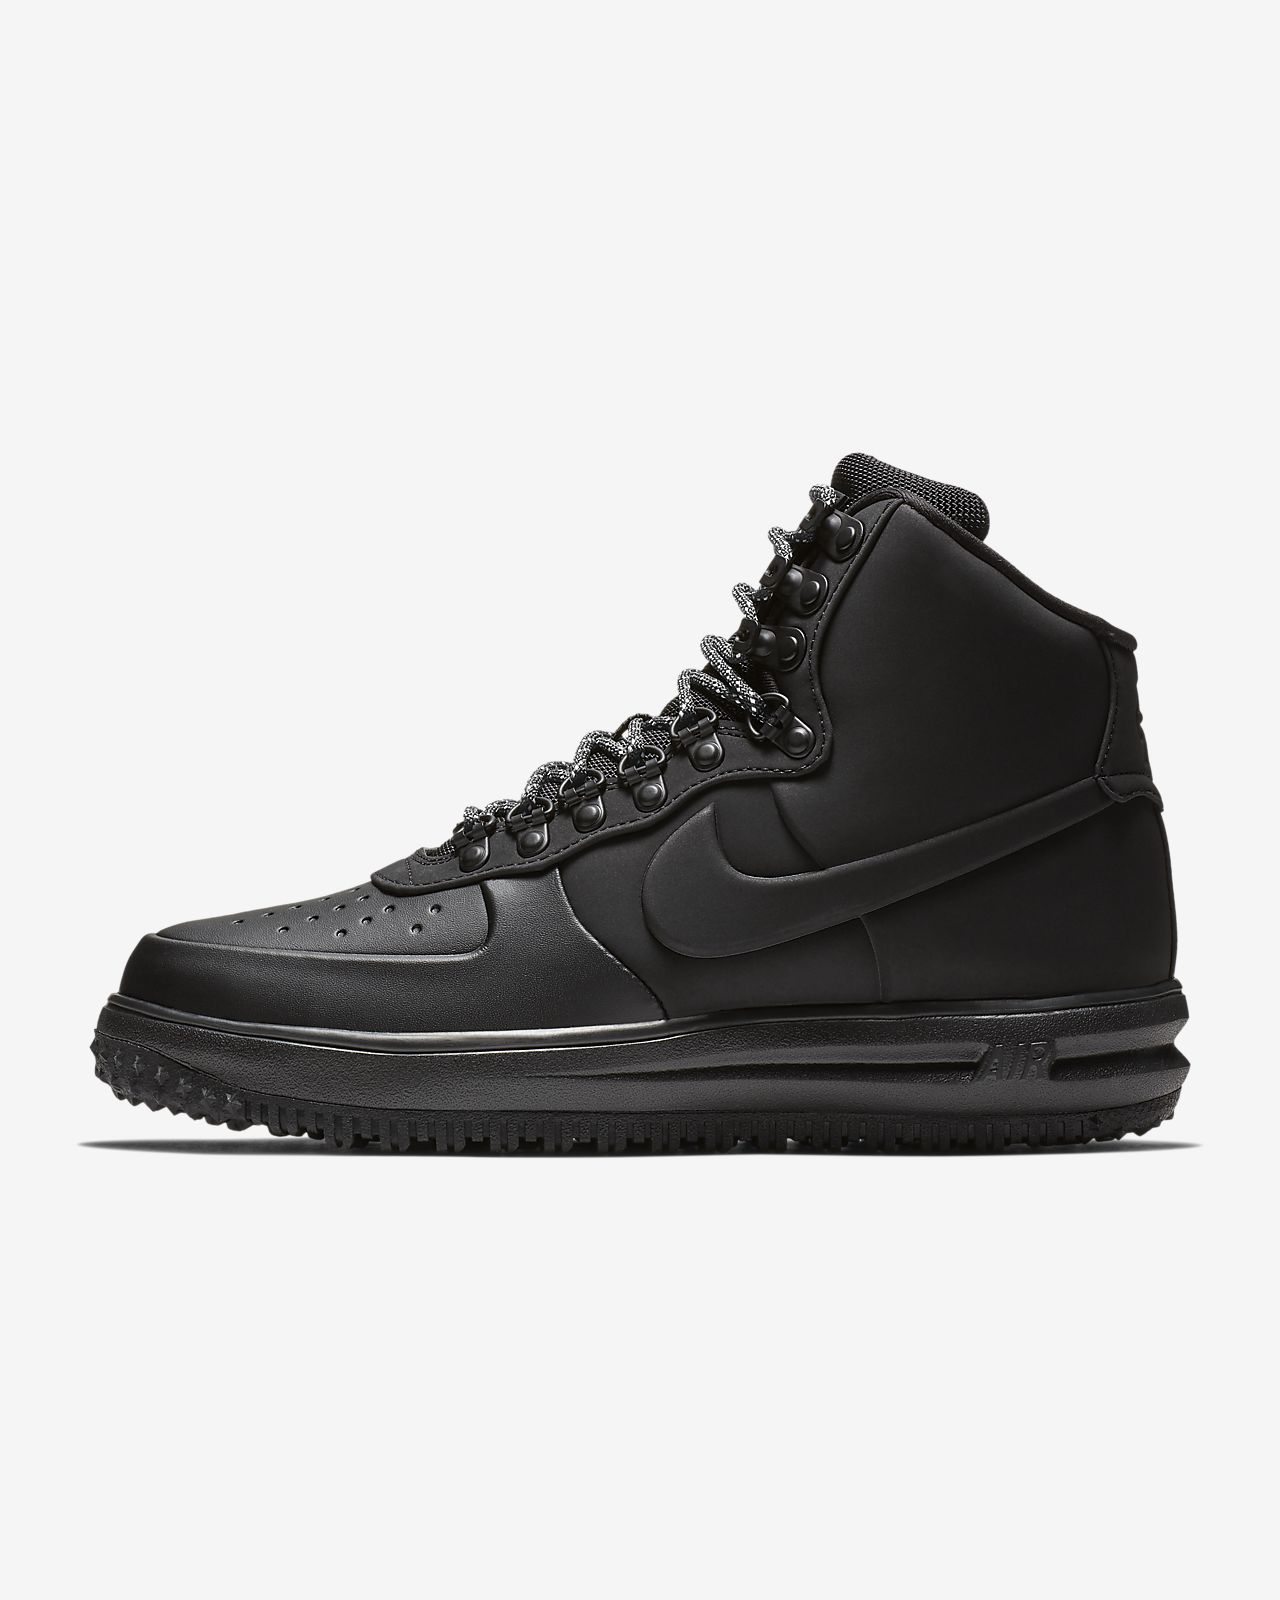 Nike Lunar Force 1 '18 Botes - Home